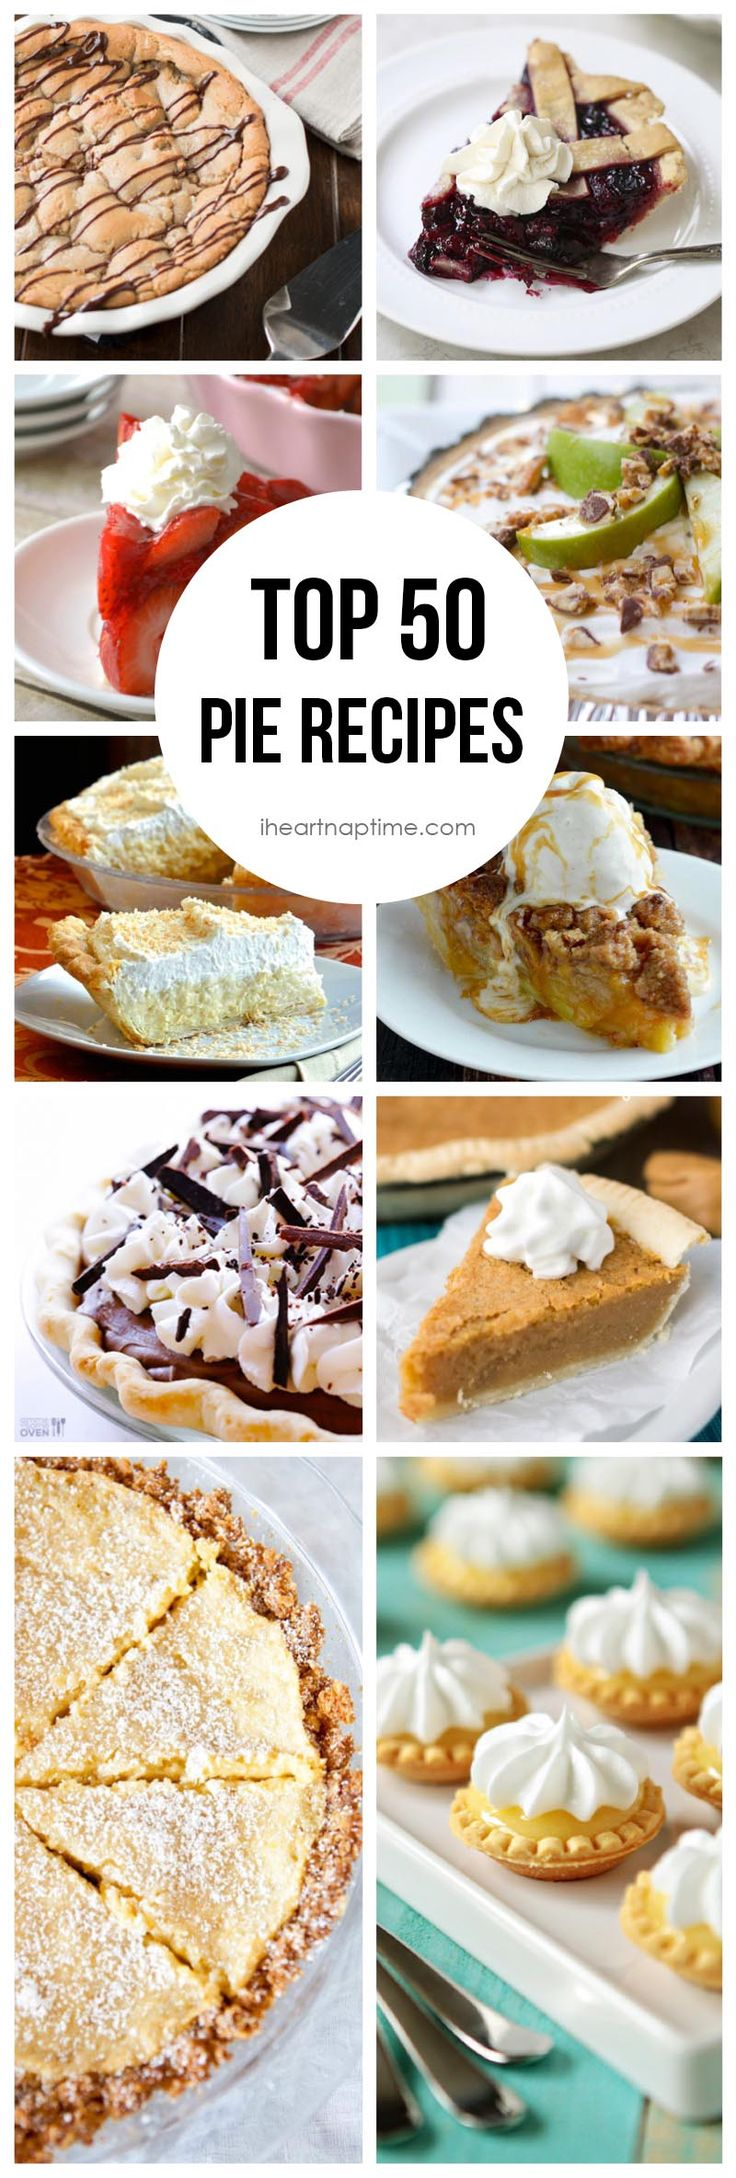 Top 50 pie recipes featured on iheartnaptime.com